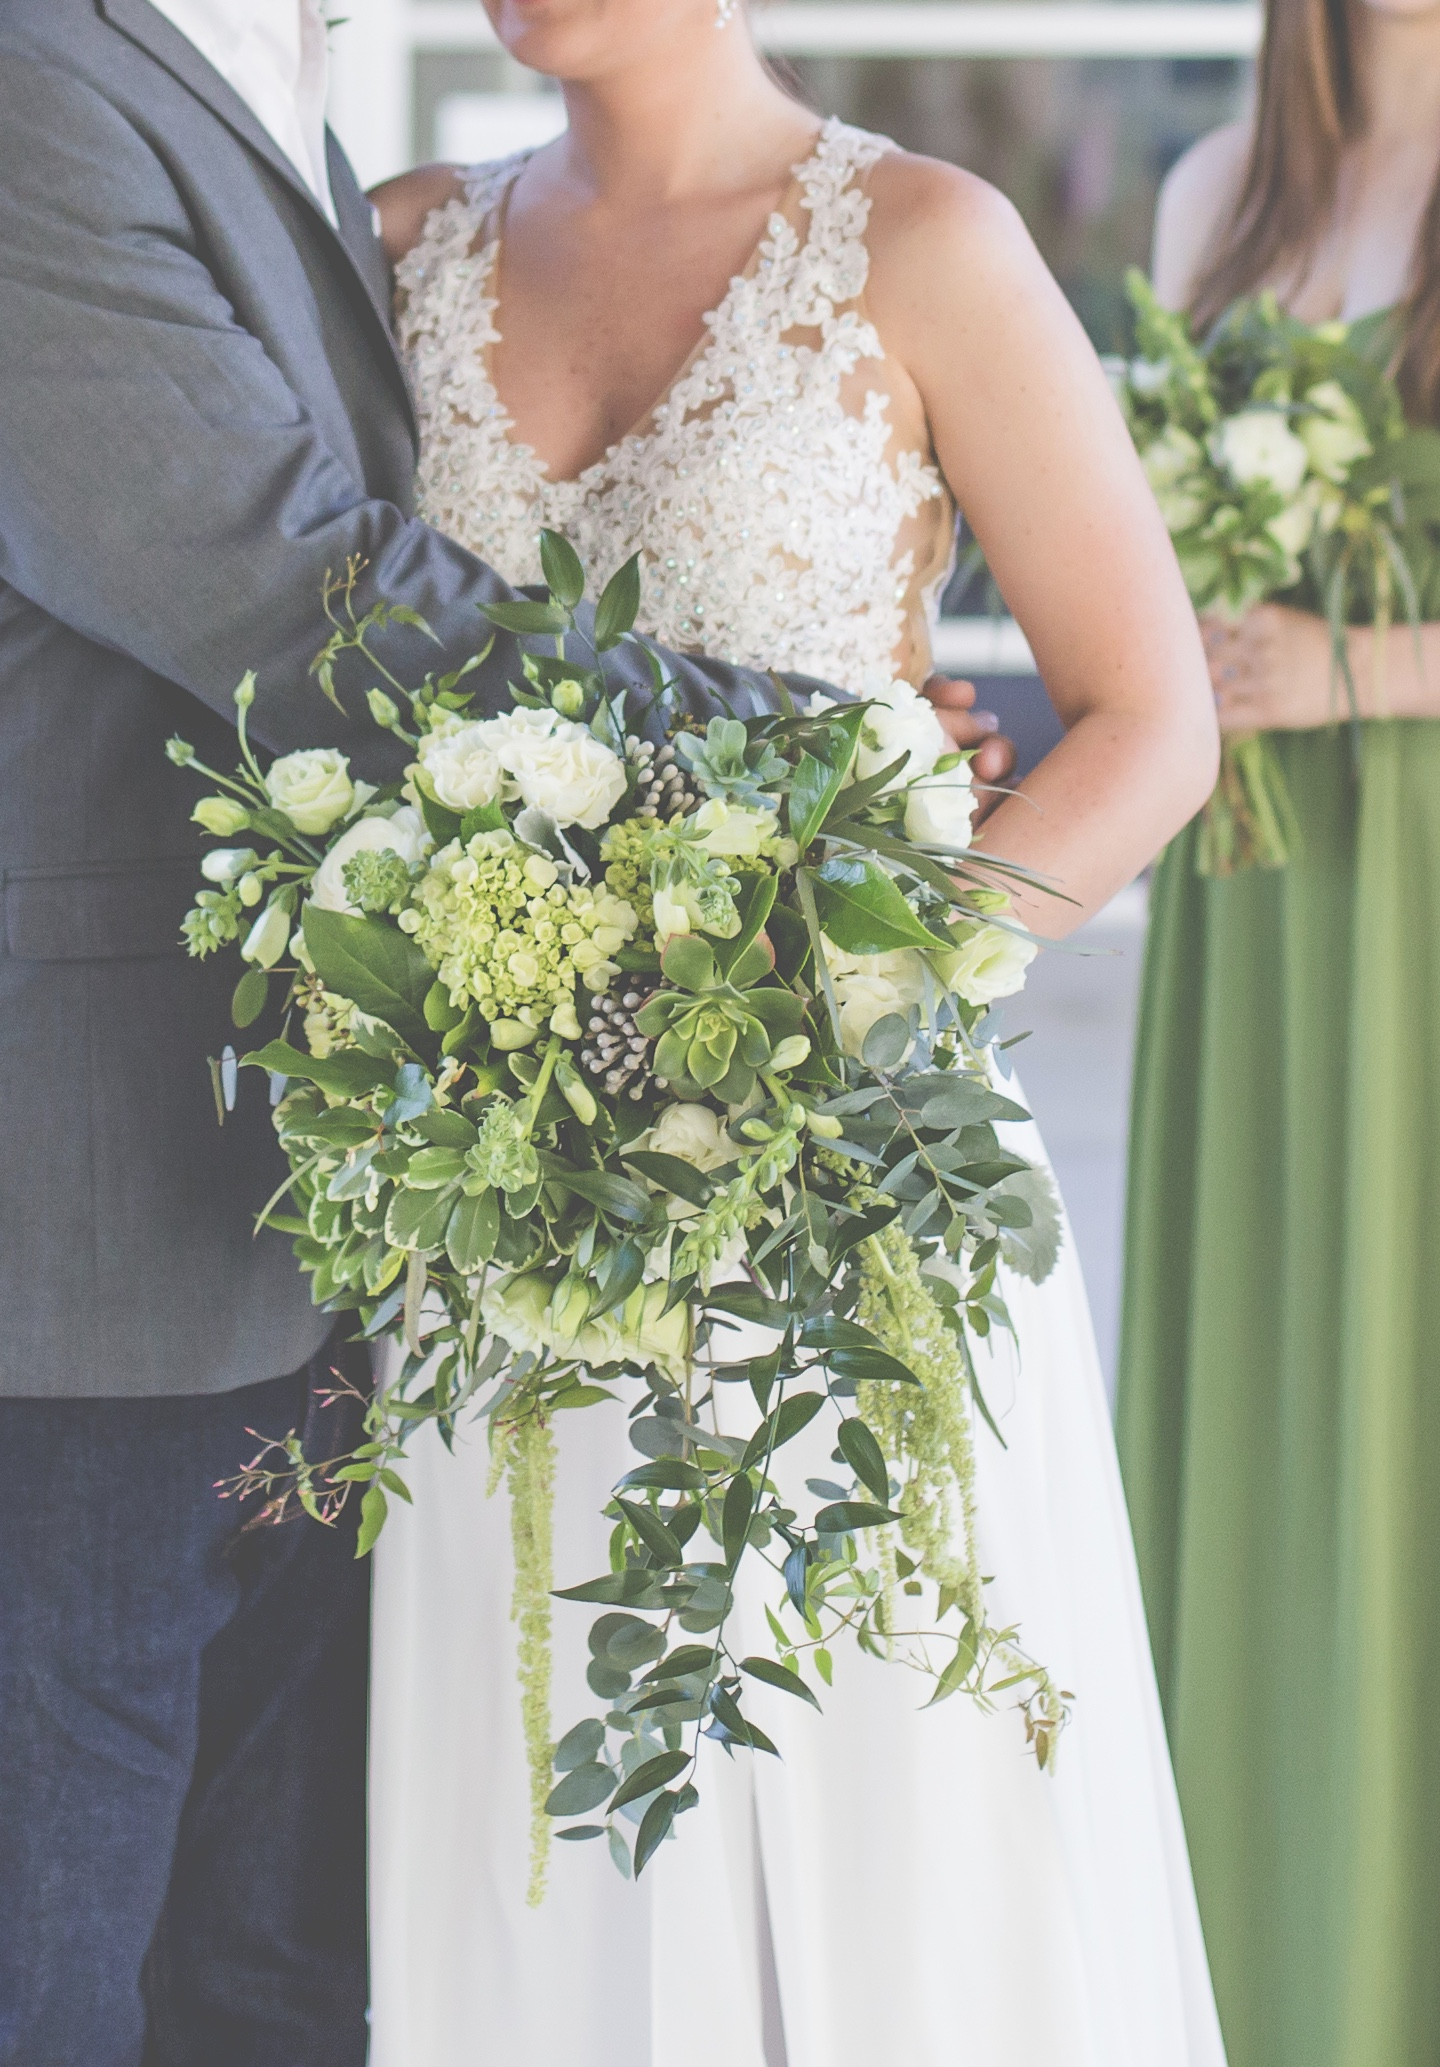 Wild Garden, Draping Greenery Style with Succulents, Amaranthus, Lisianthus and Hydrangea. Photo by New View Photography.  2 on the Roof, Chattanooga TN.